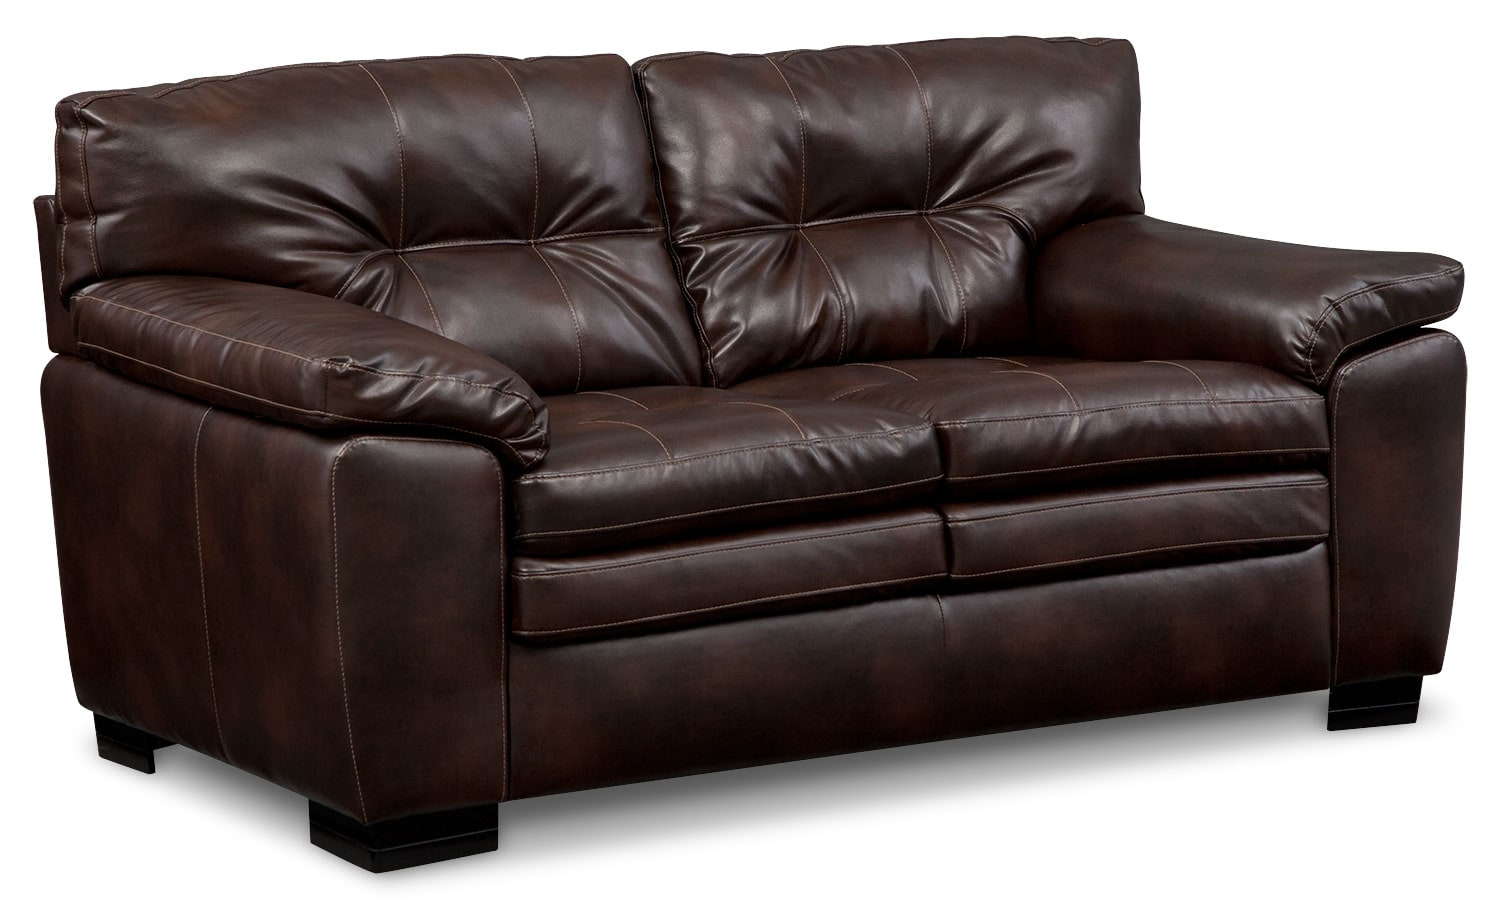 Living Room Furniture - Magnum Loveseat - Brown